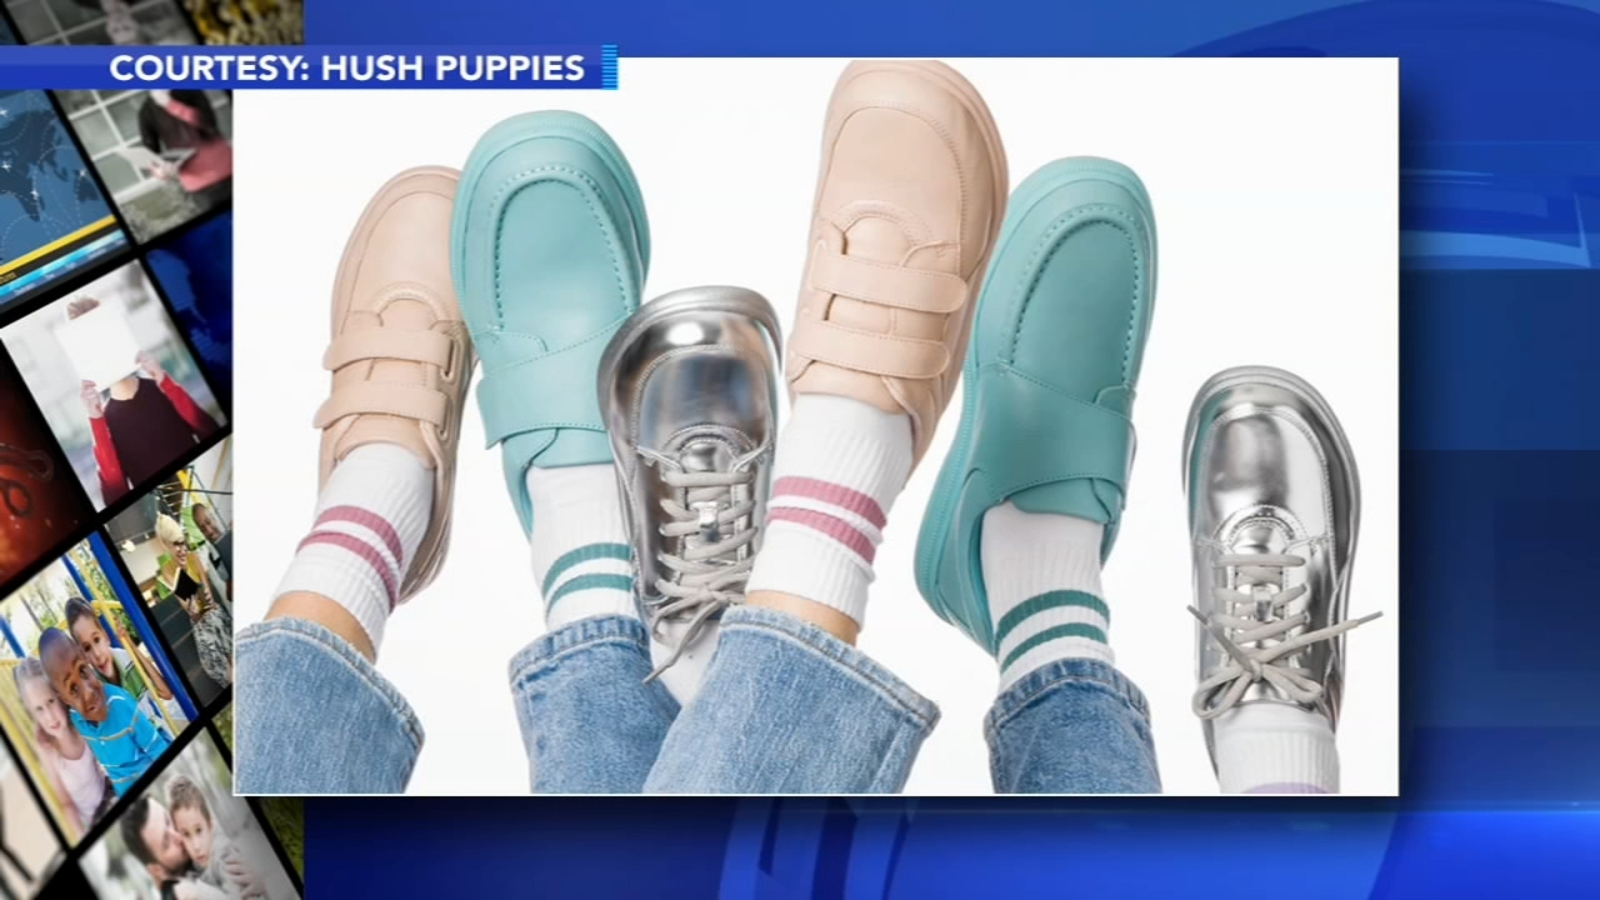 Hush Puppies' Power Walkers giving new life to dad sneakers